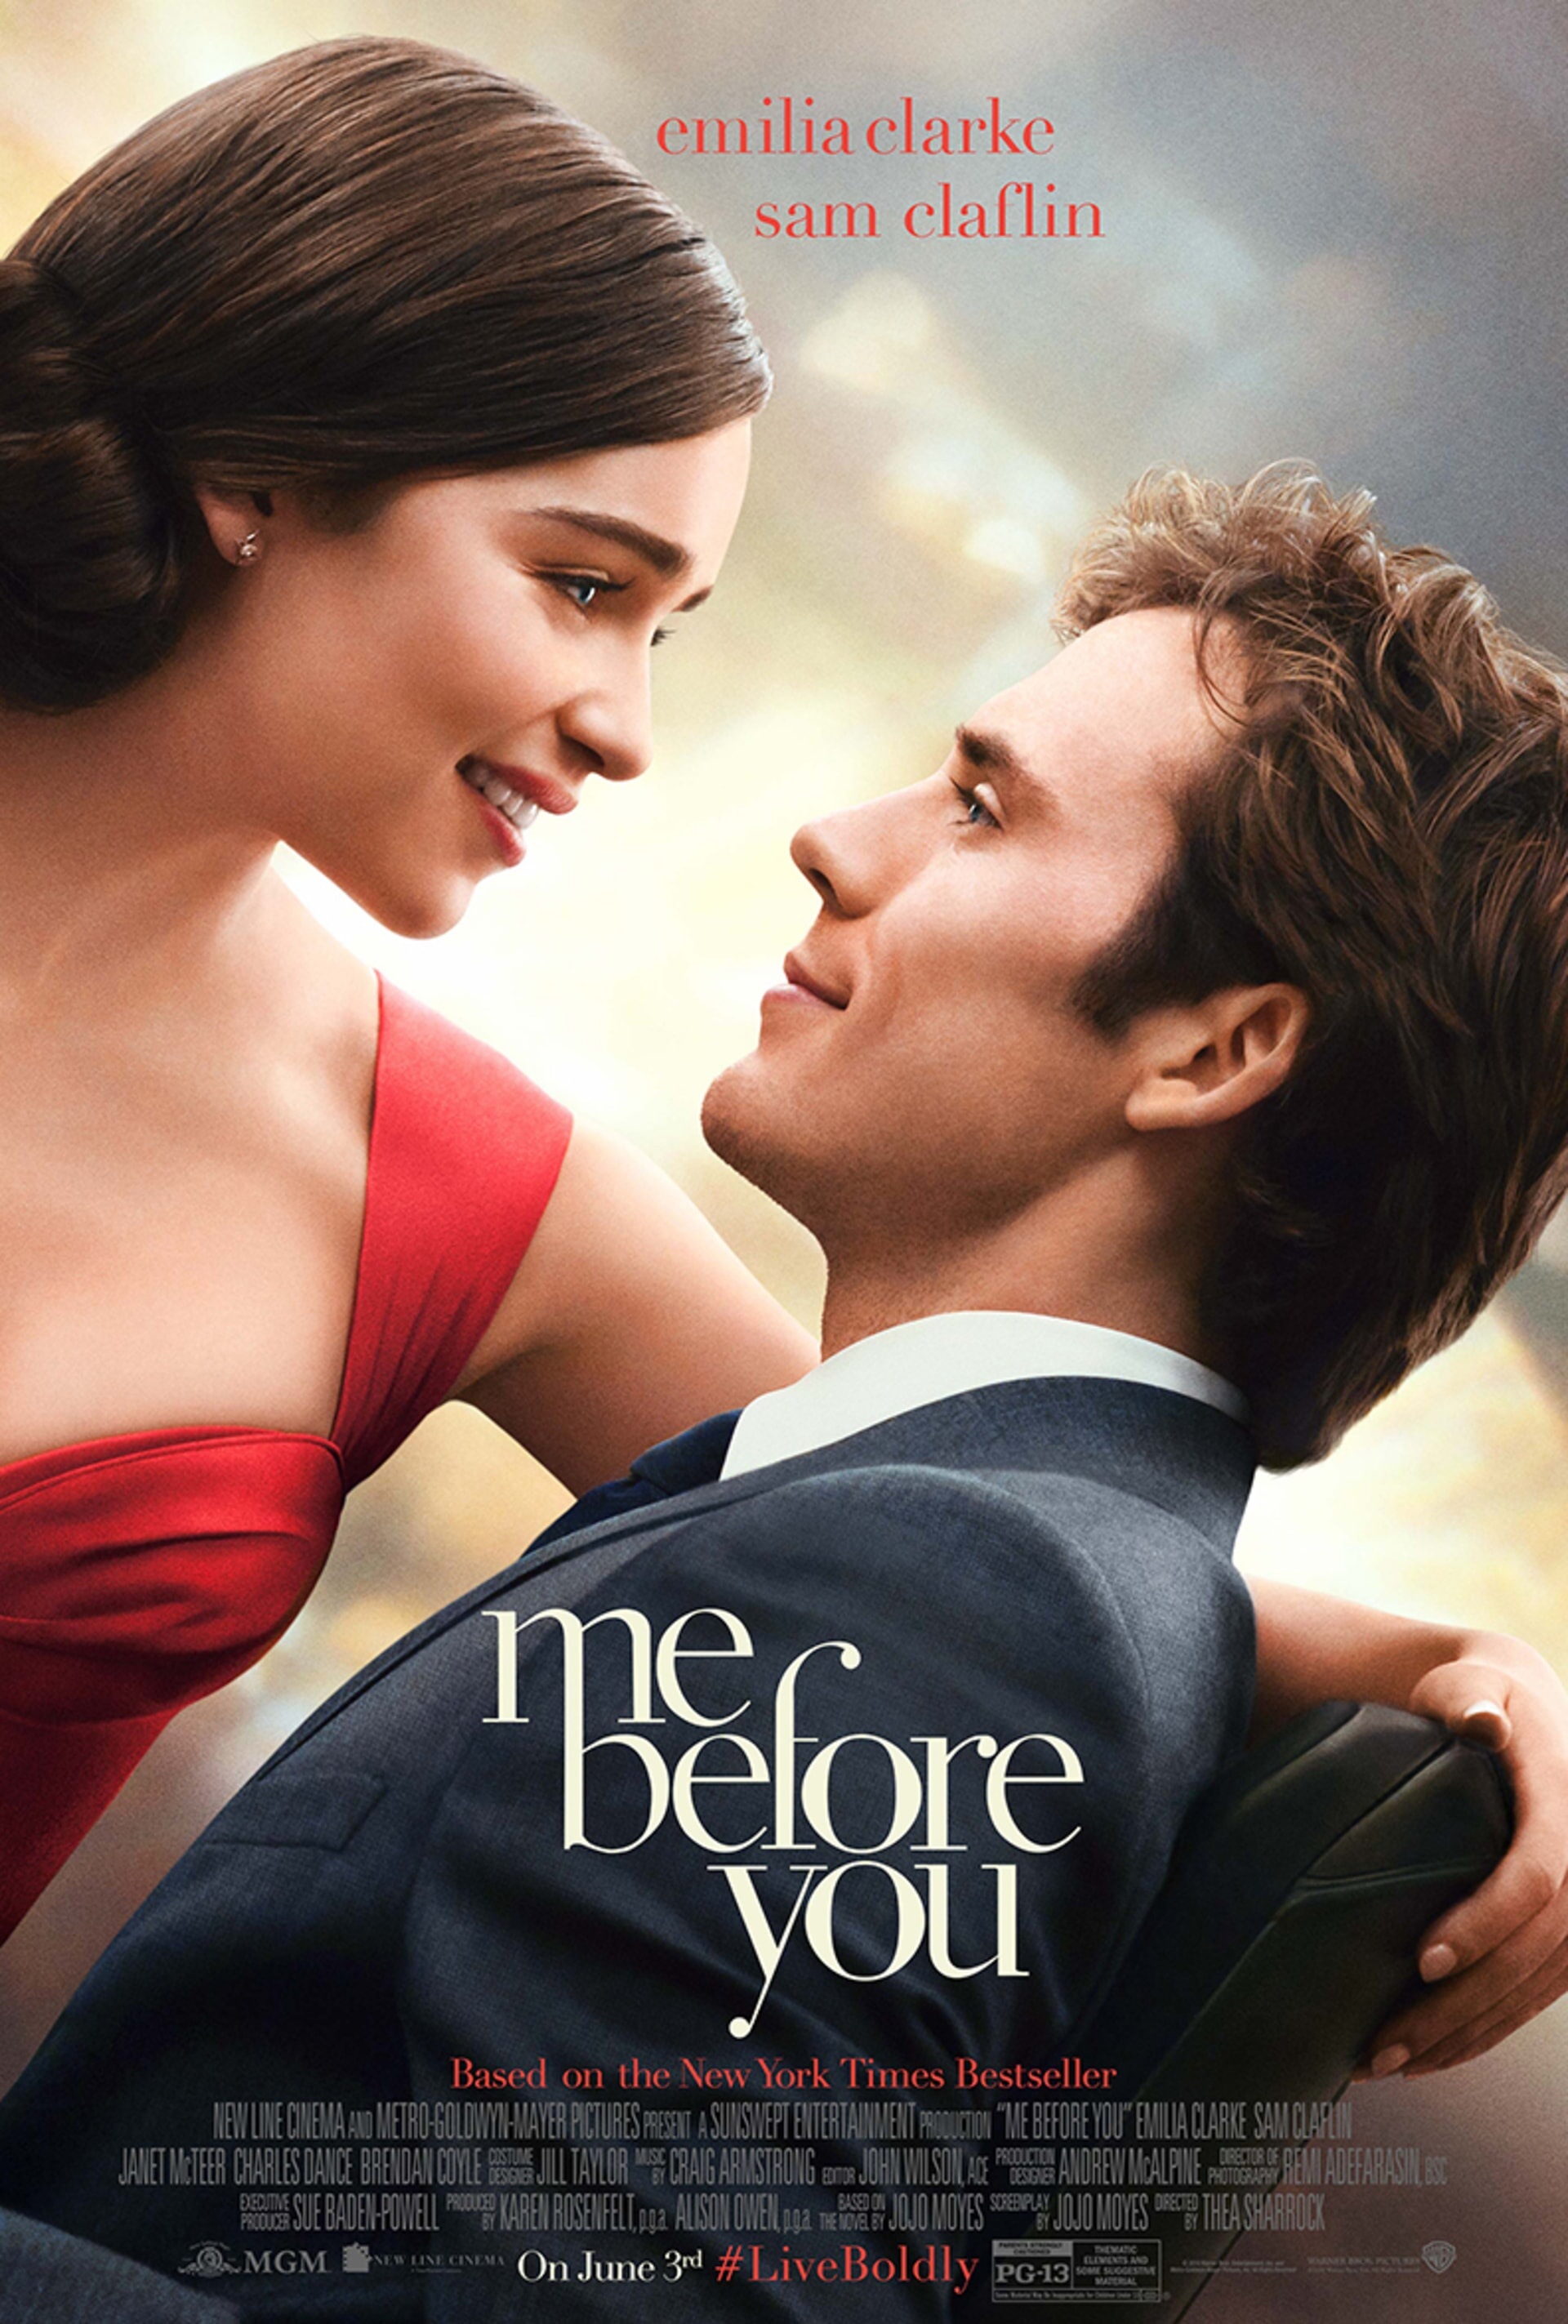 Emilia Clarke and Sam Claflin in Me Before You poster